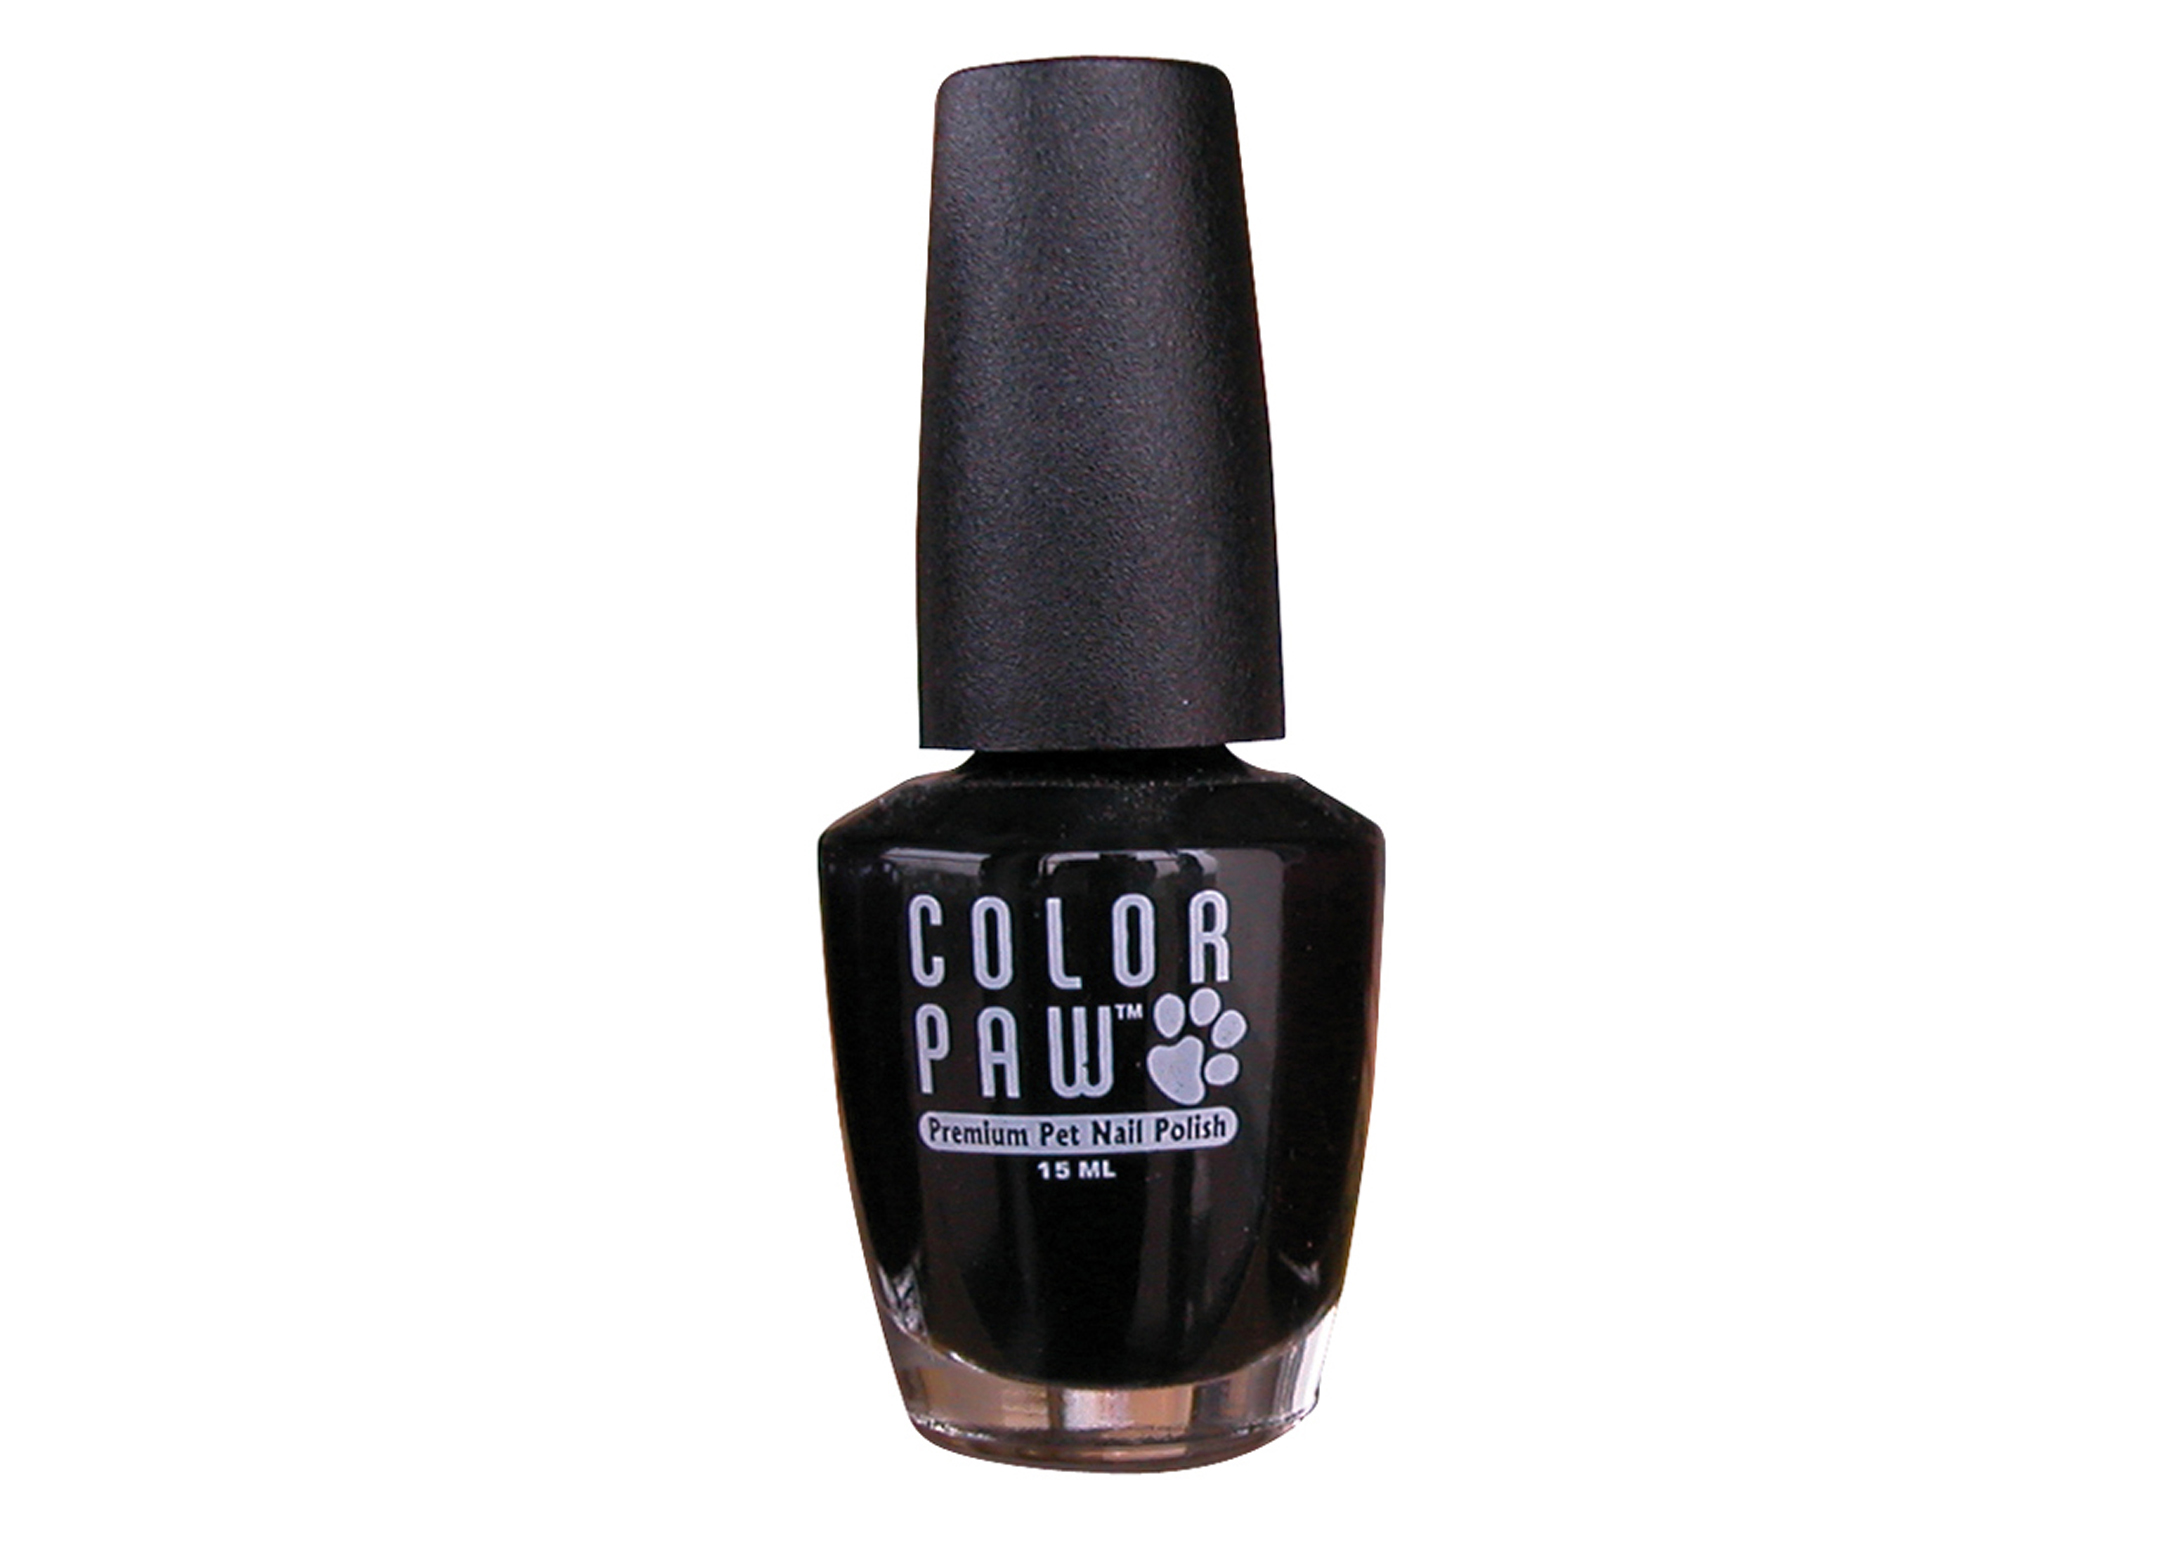 Top Performance Nail Polish Black 15 ml Nail Polish